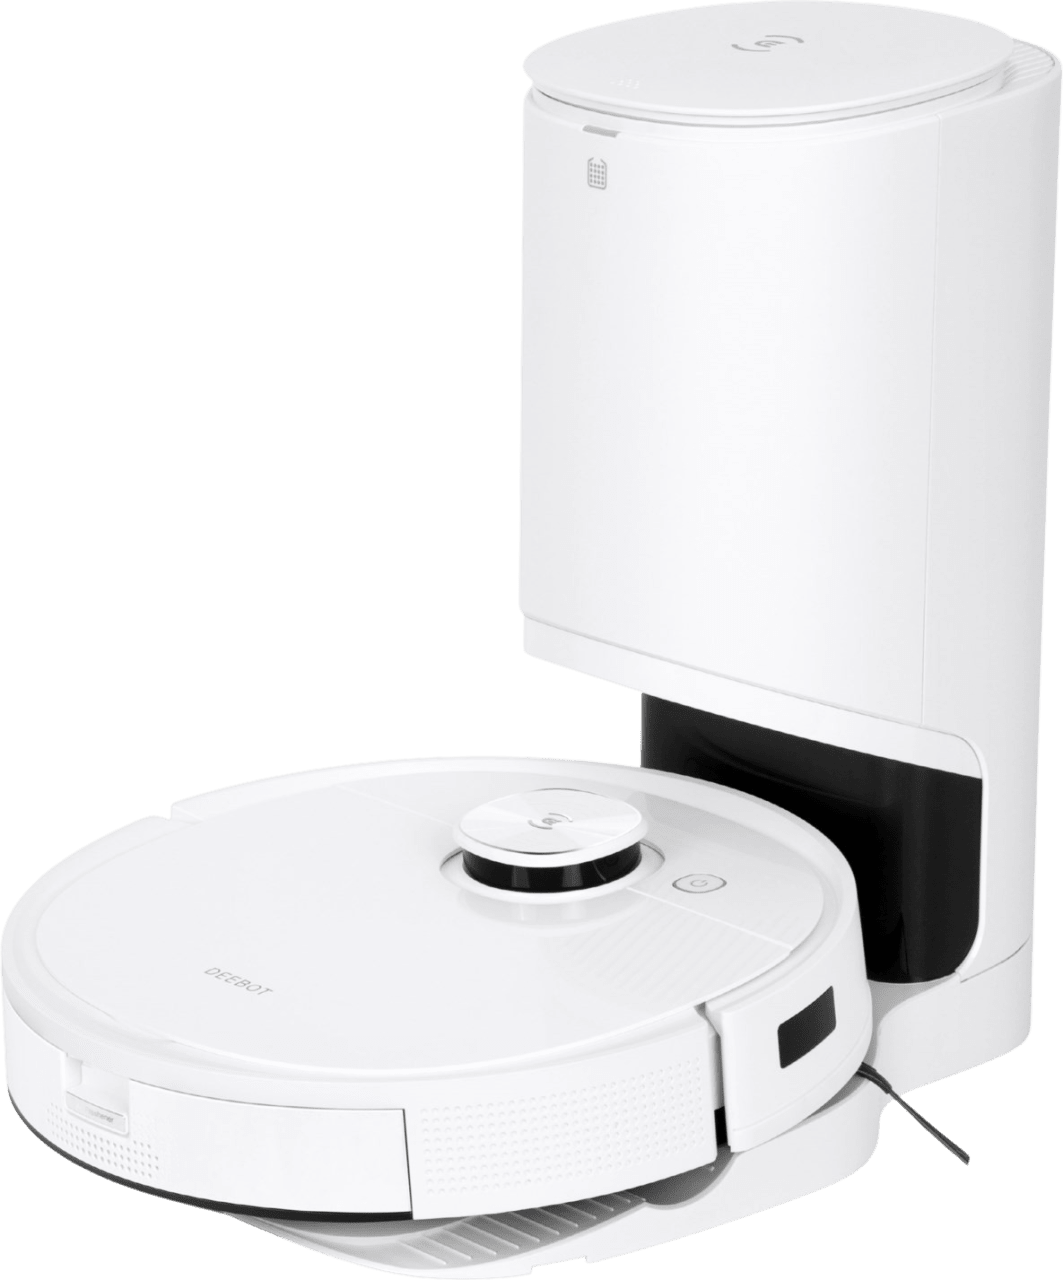 White Ecovacs Deebot T9+ Vacuum & Mop Robot Cleaner with Automatic Dirt Disposal.1